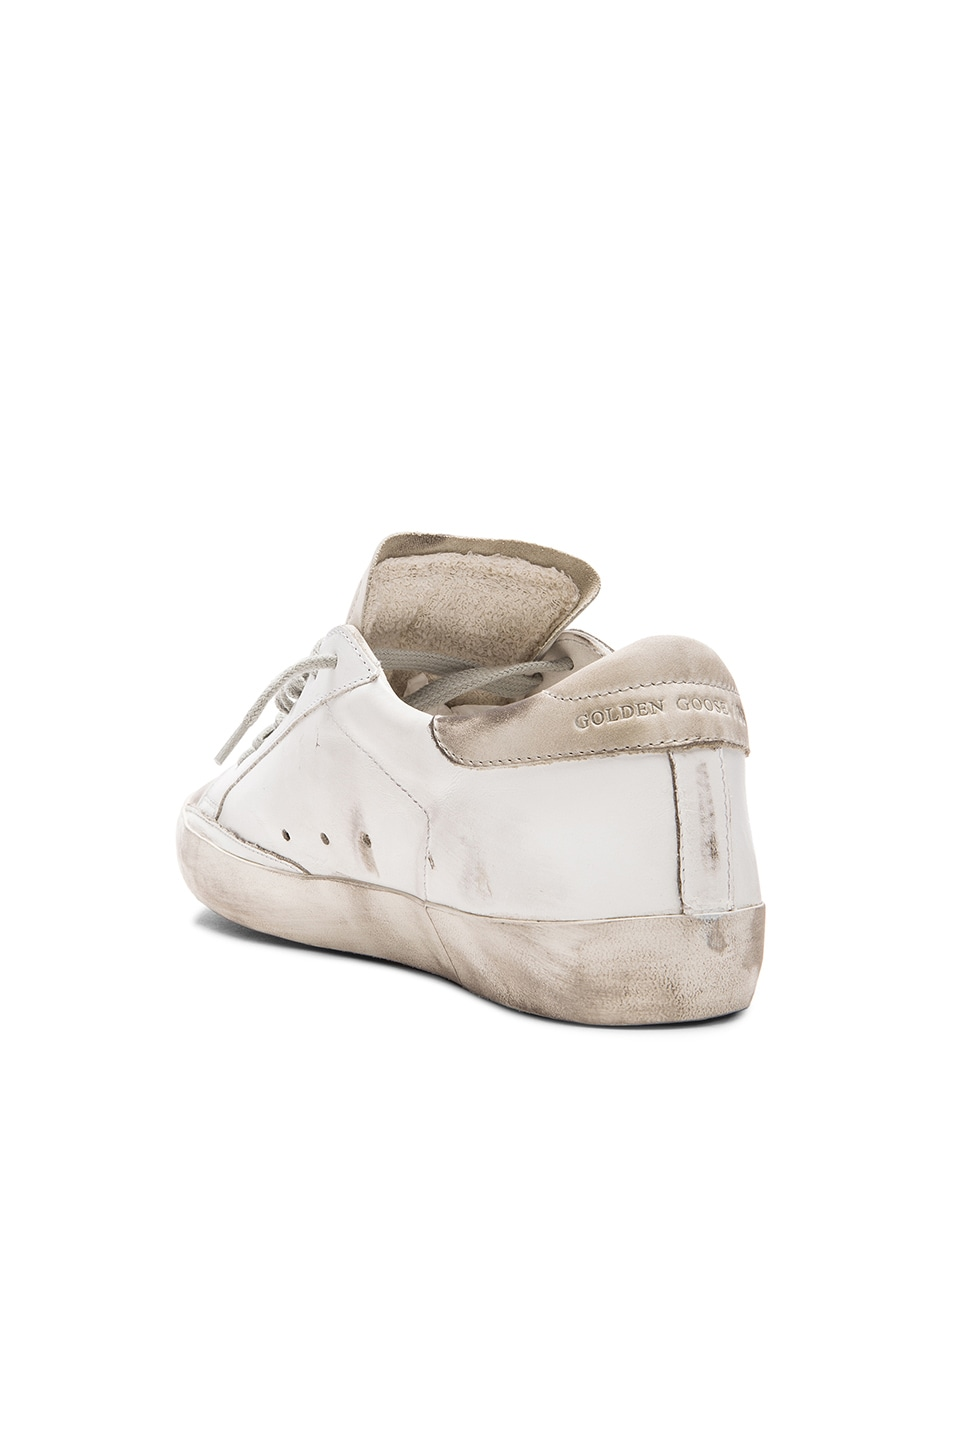 Image 3 of Golden Goose Superstar Sneakers in White